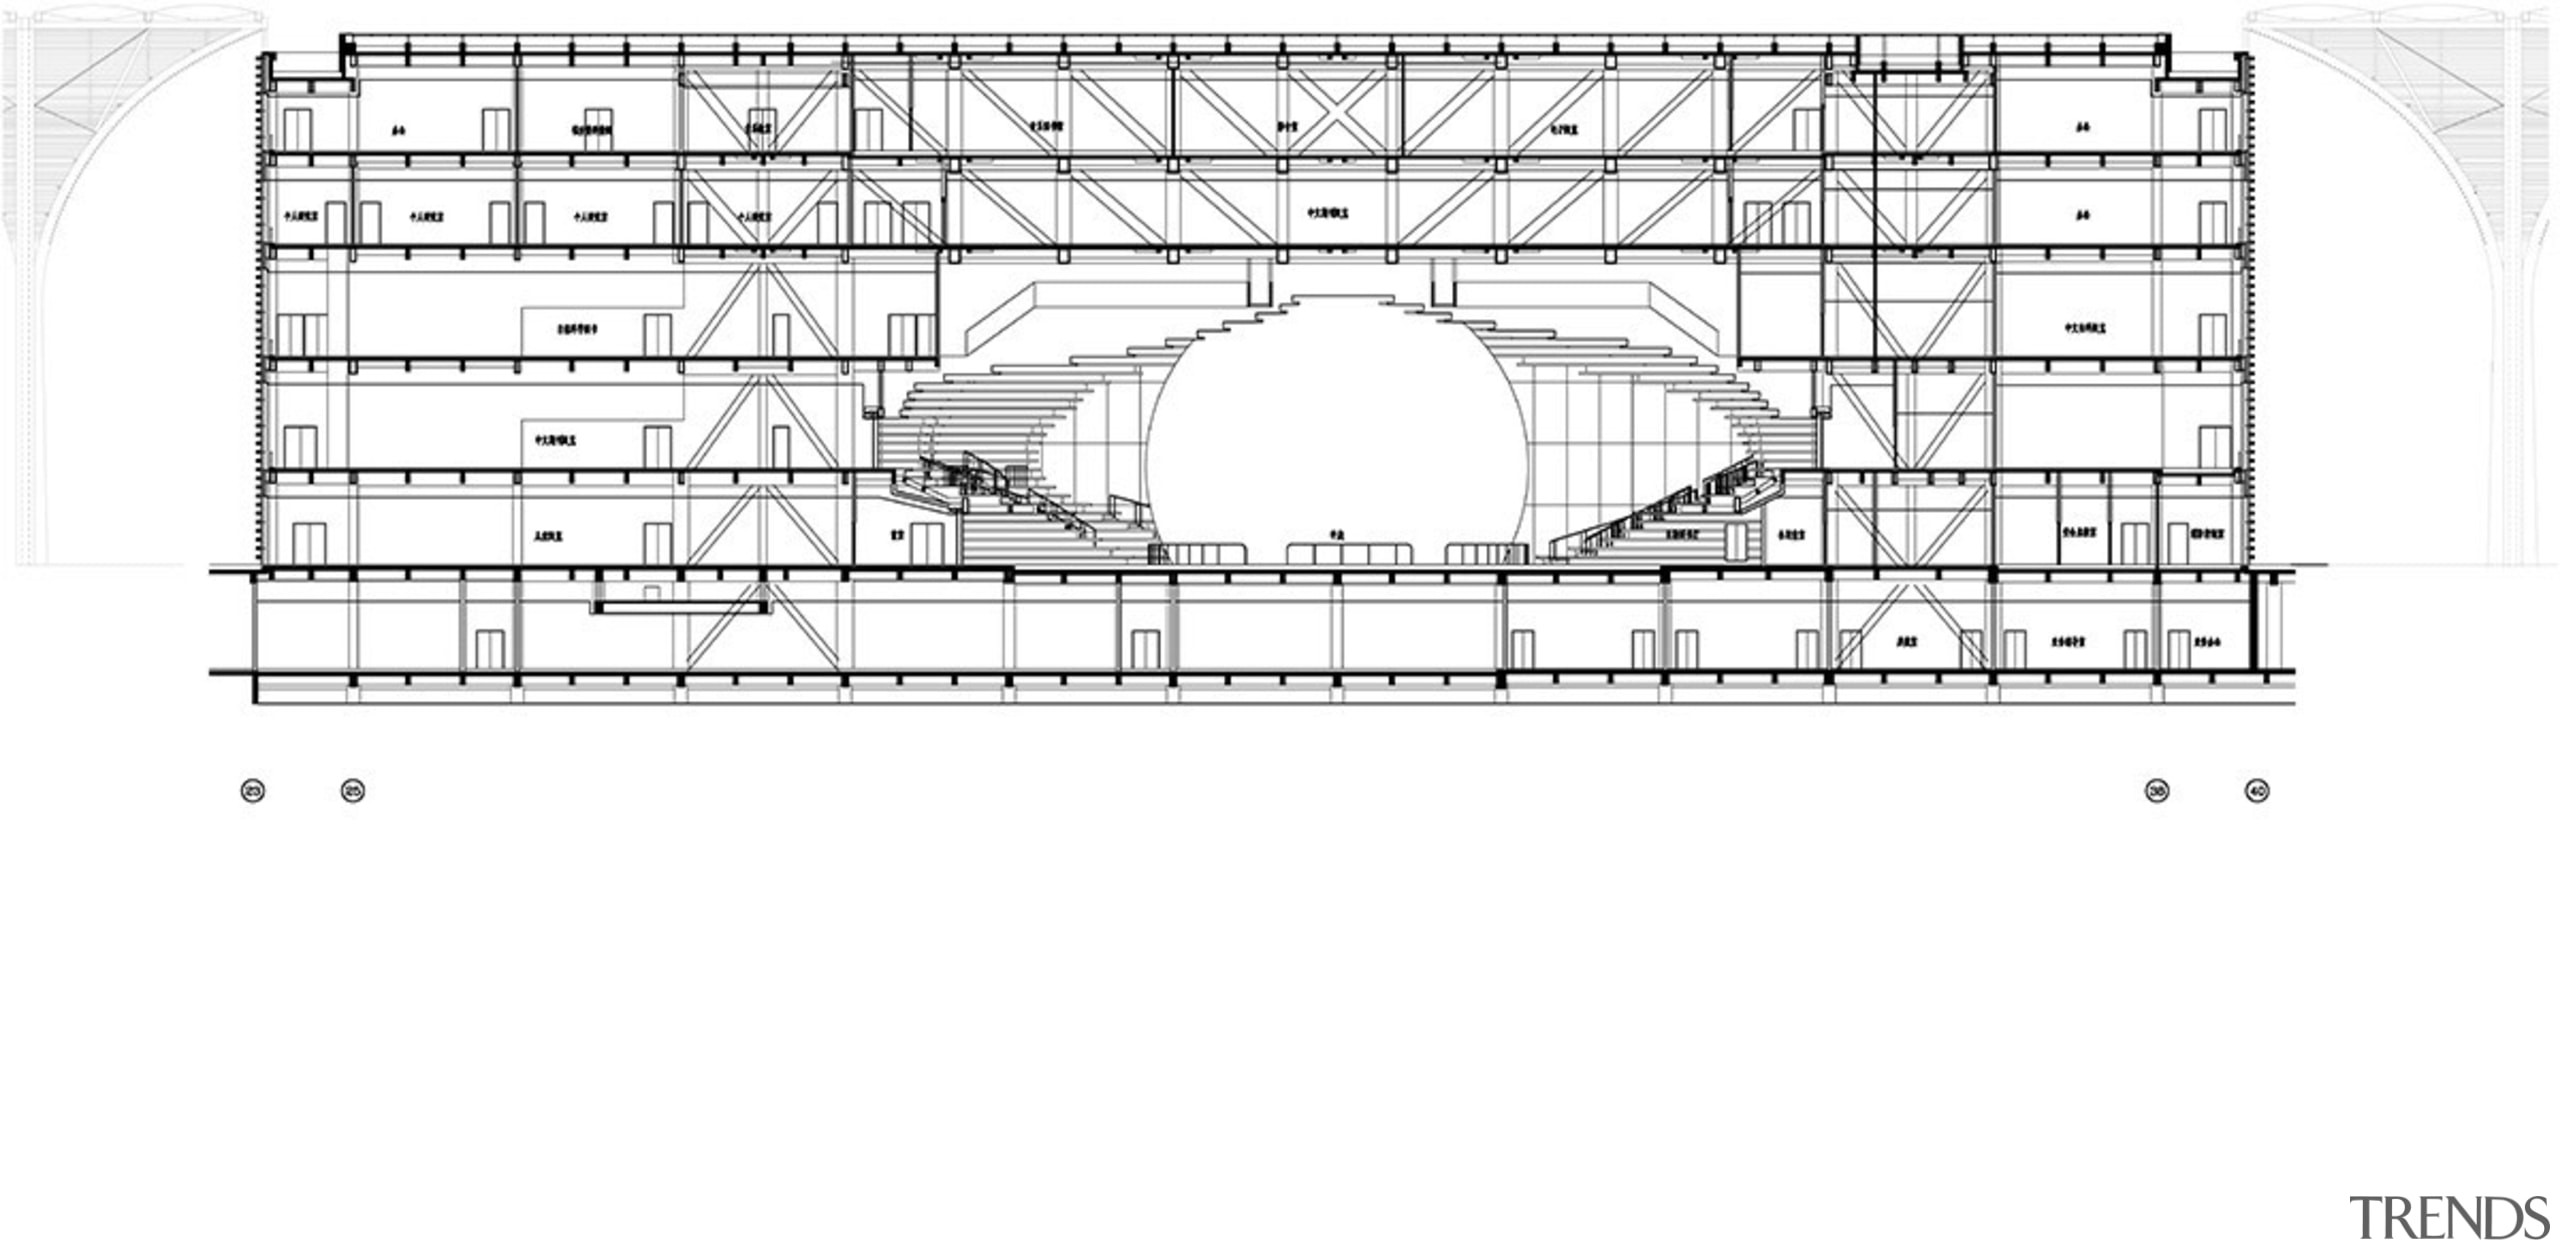 A cross-section of the Tianjin Binhai Library shows area, black and white, design, diagram, drawing, font, line, plan, technical drawing, text, white